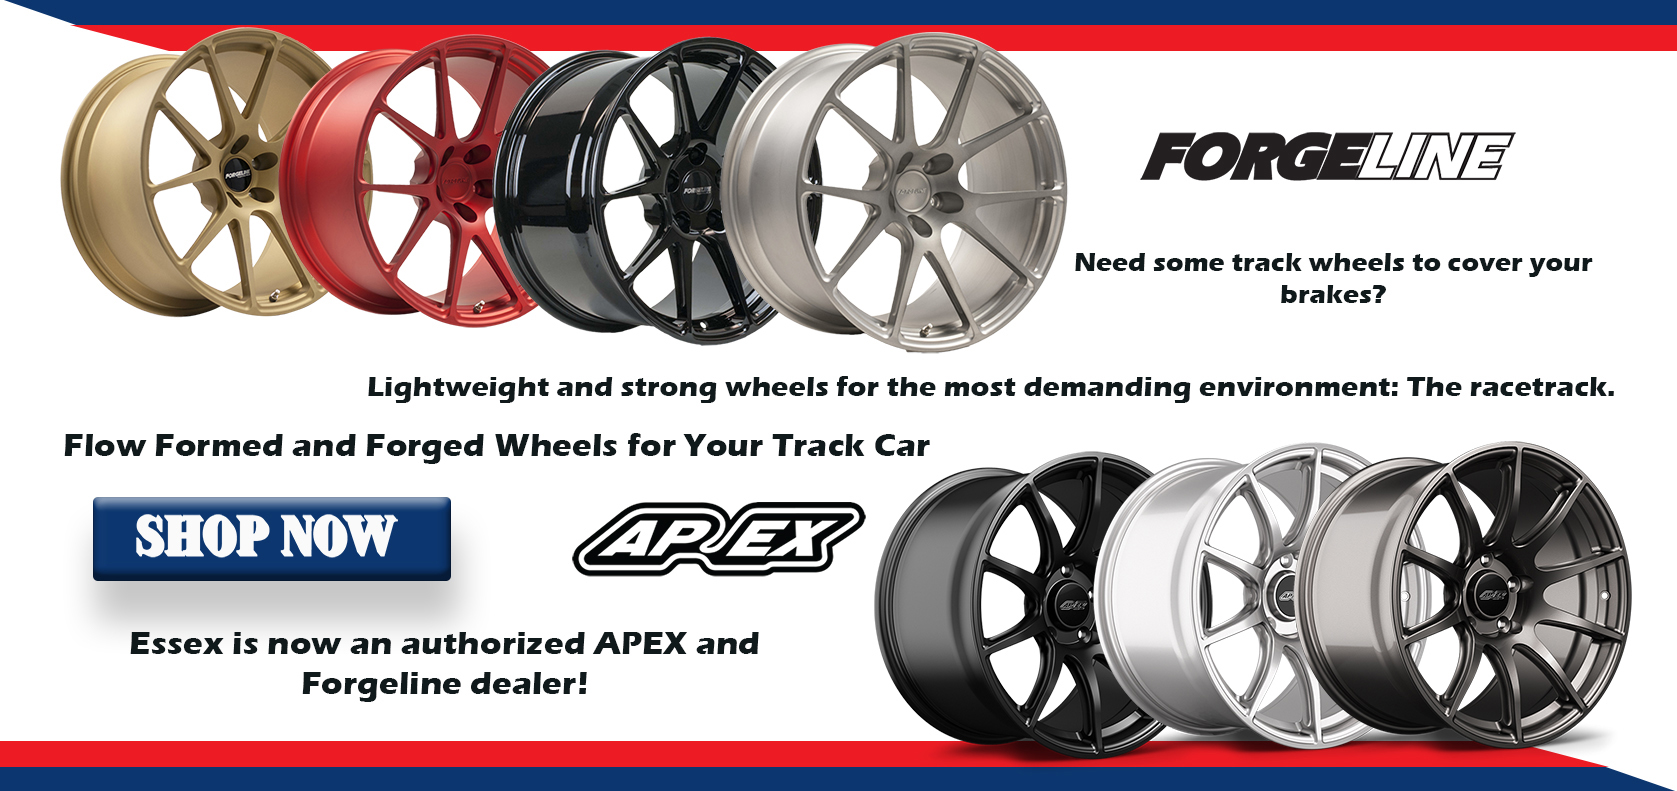 Apex, Forgeline, Wheels